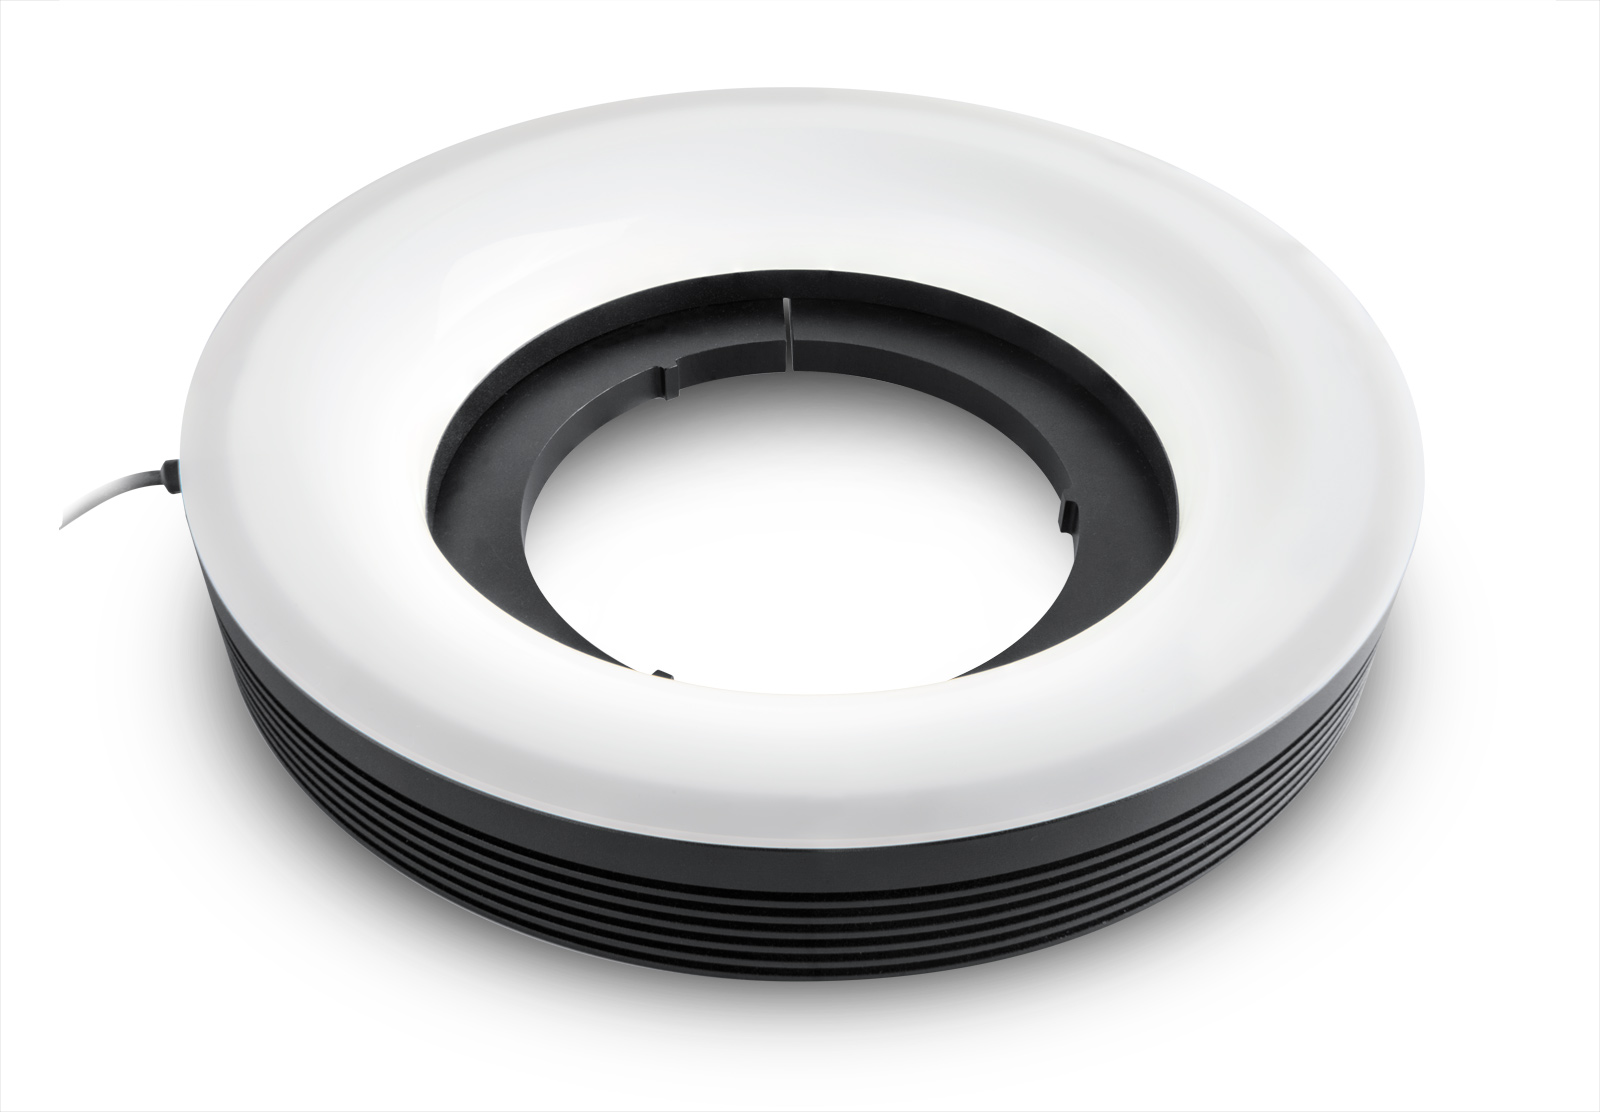 Illuminator model LTRN 245 W45 - Ring LED